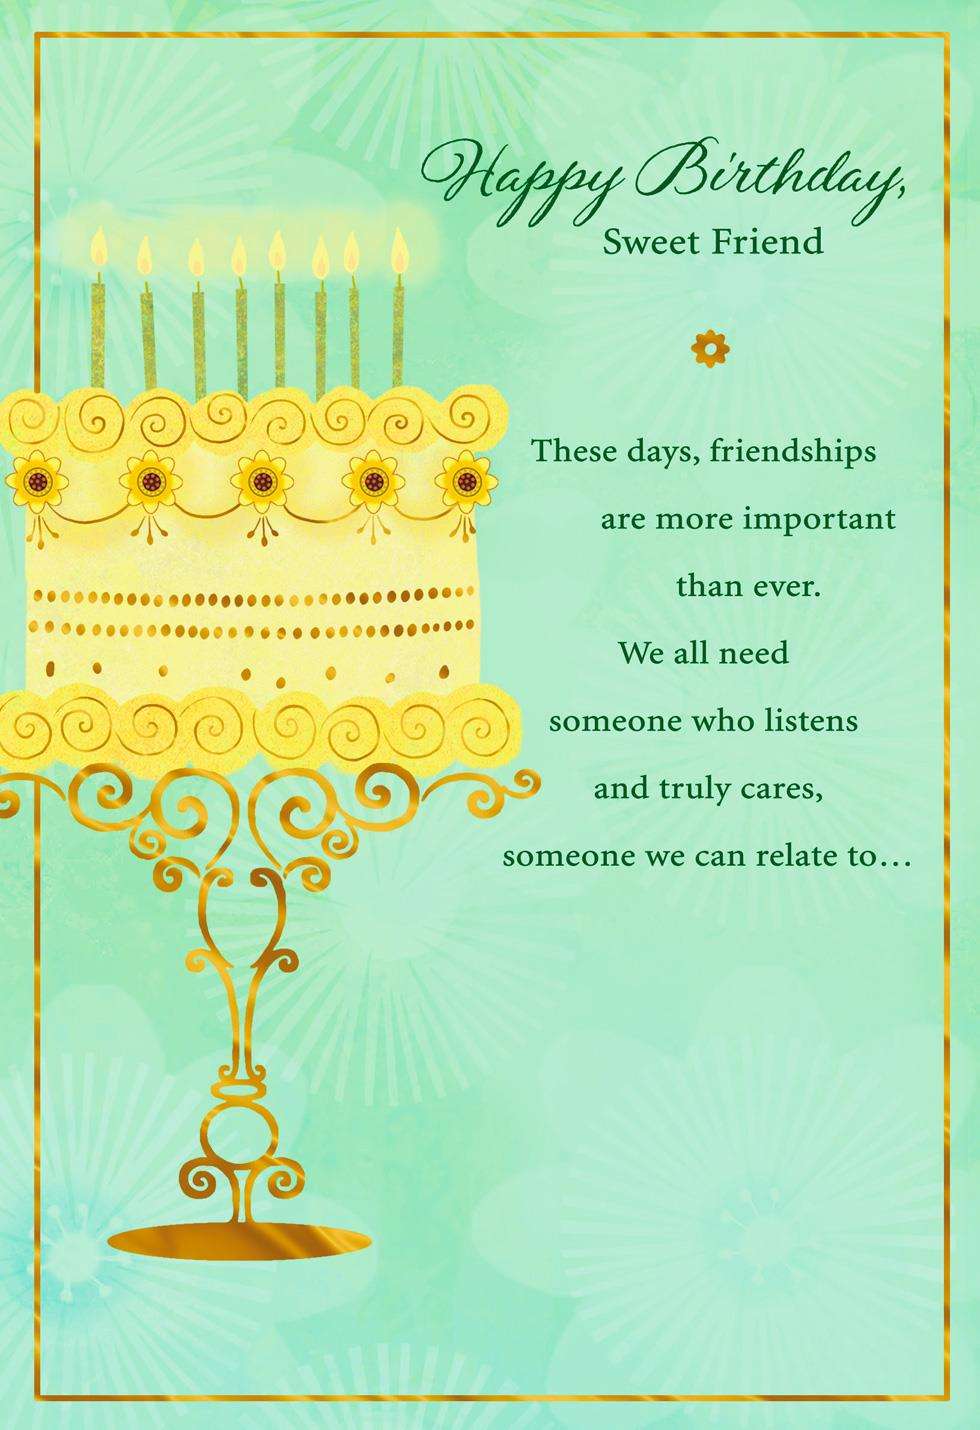 elegant cake and candles birthday card for friend